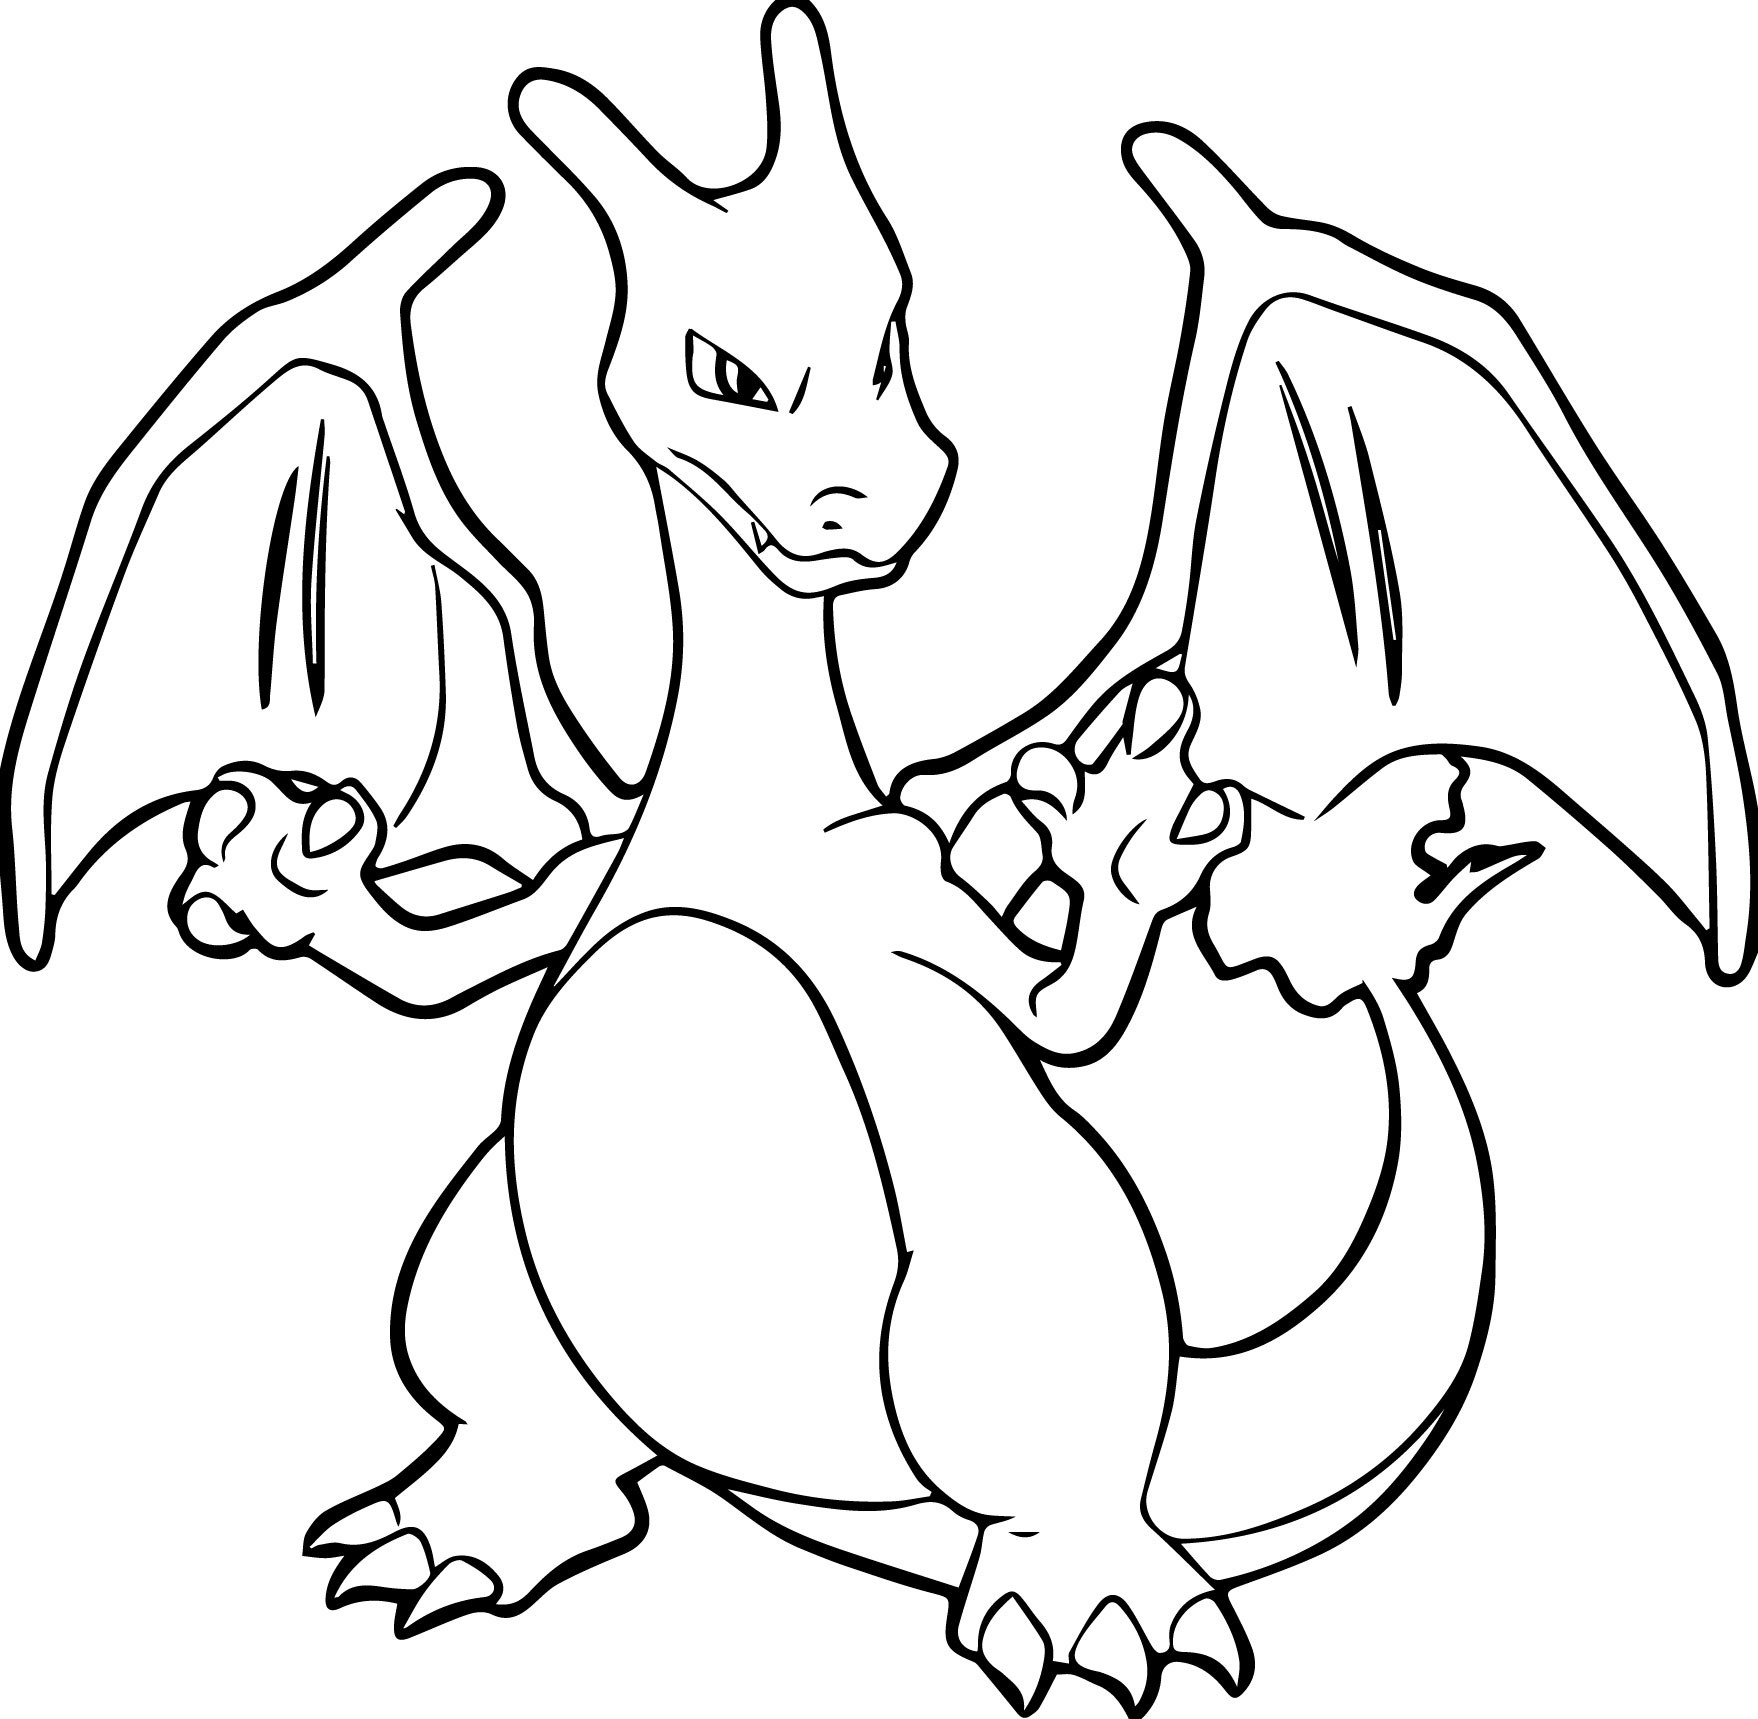 1758x1719 Delighted Charizard Coloring Pages Coloringsuite Com